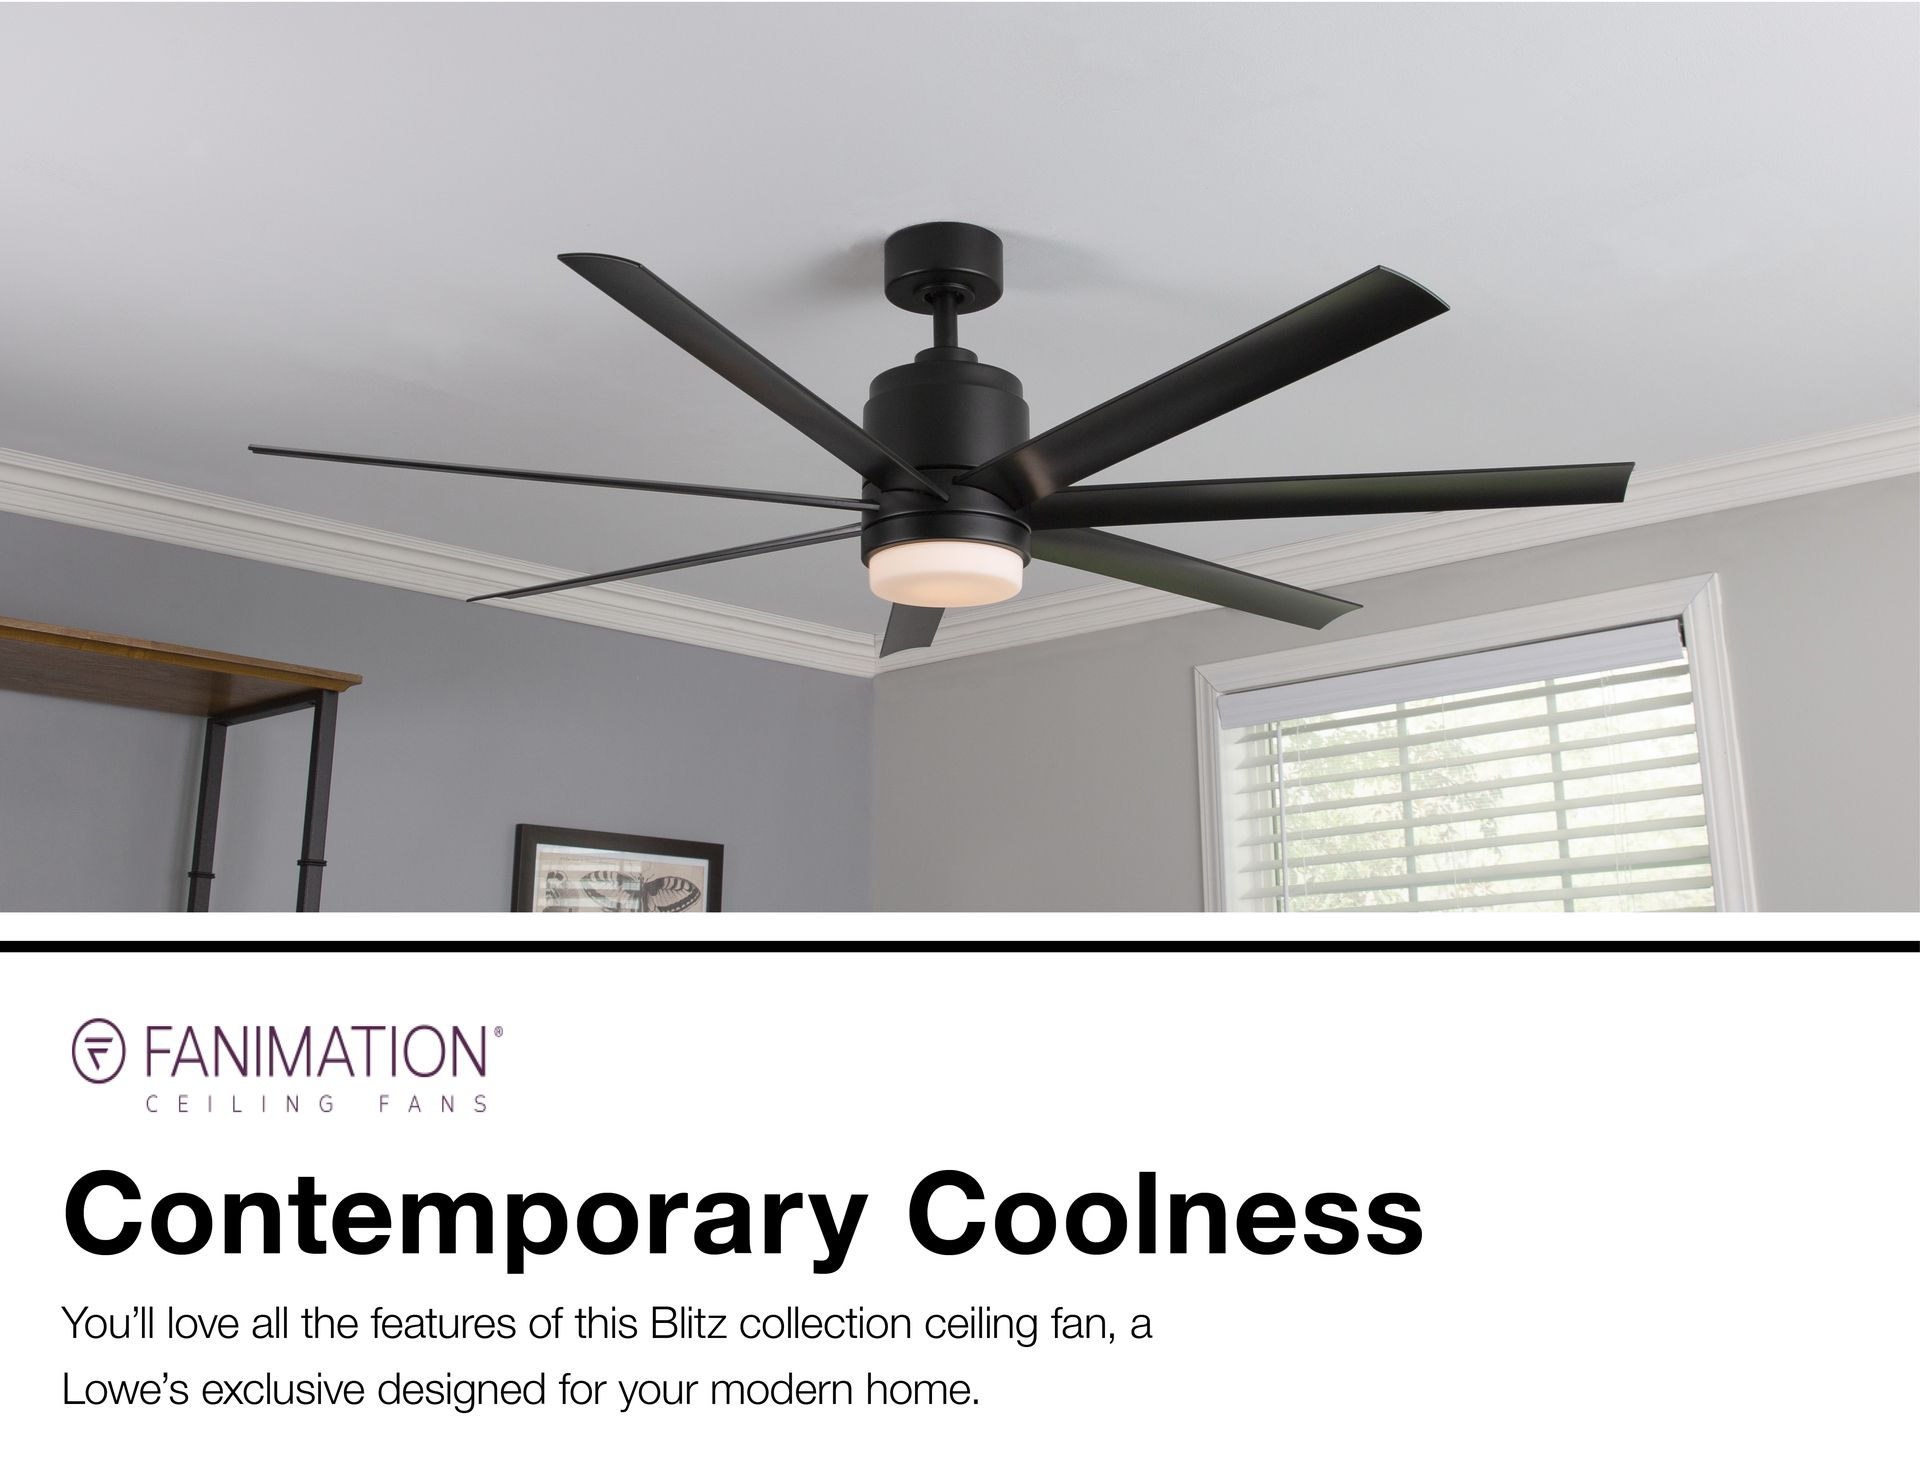 Fanimation Studio Collection Blitz 56 In Matte Black Led Indoor Outdoor Ceiling Fan With Light Kit And Remote 7 Blade Lowes Com Outdoor Ceiling Fans Ceiling Fan With Light Ceiling Fan